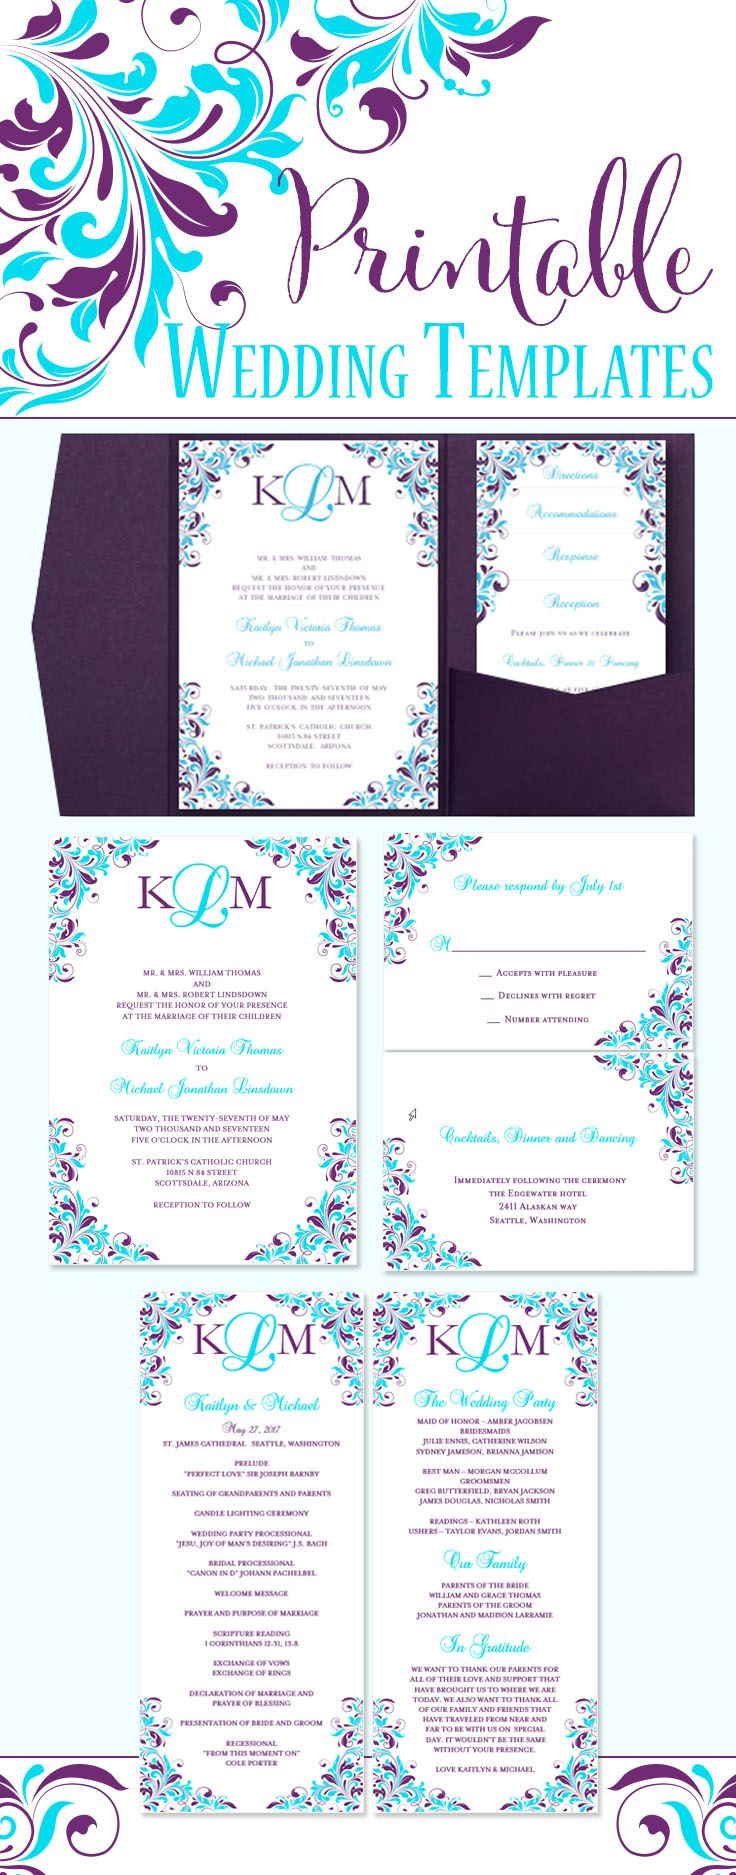 Best 25 Make your own invitations ideas – How to Make Invitations on Word